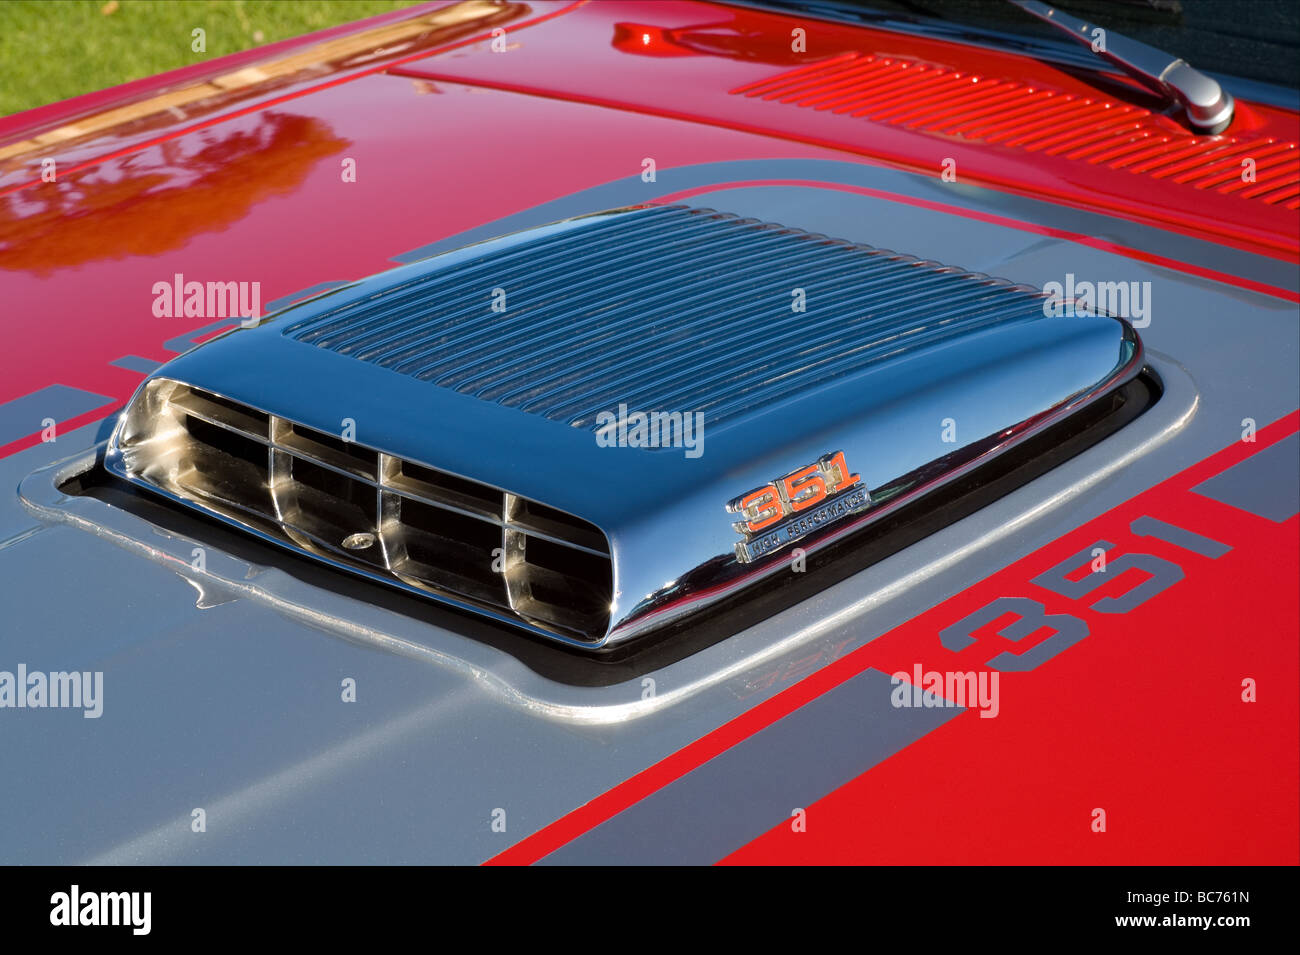 Air Intake Scoop On The Bonnet Of A Highly Modified 1970s Model